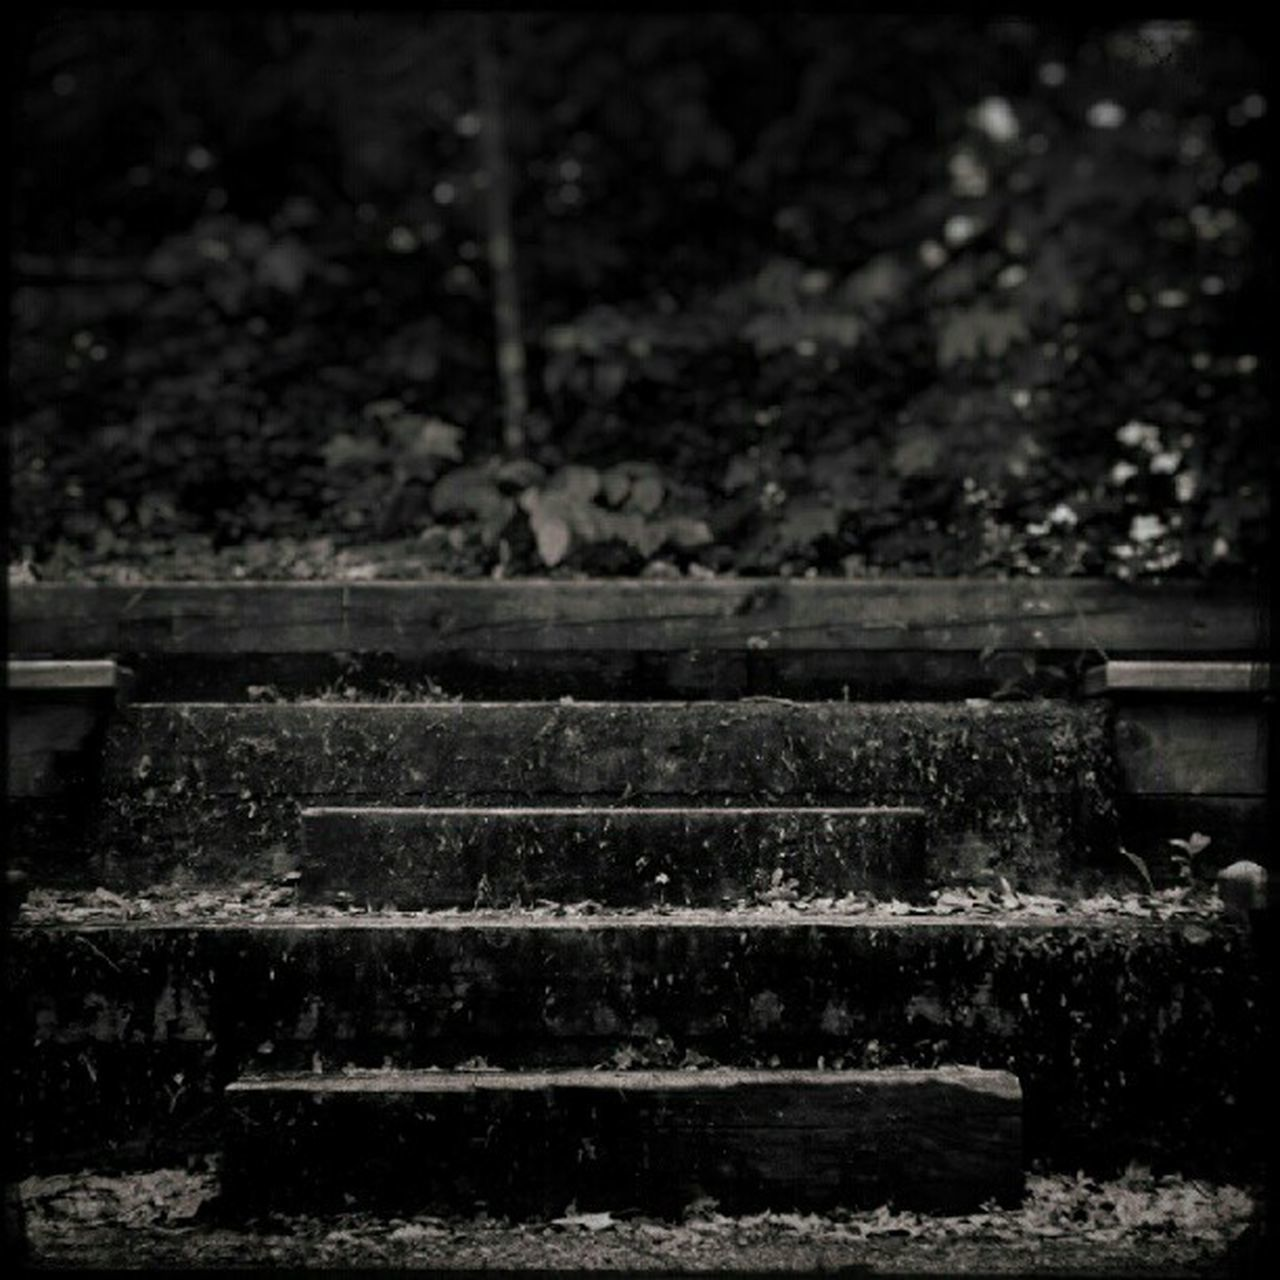 steps, no people, day, outdoors, tree, nature, close-up